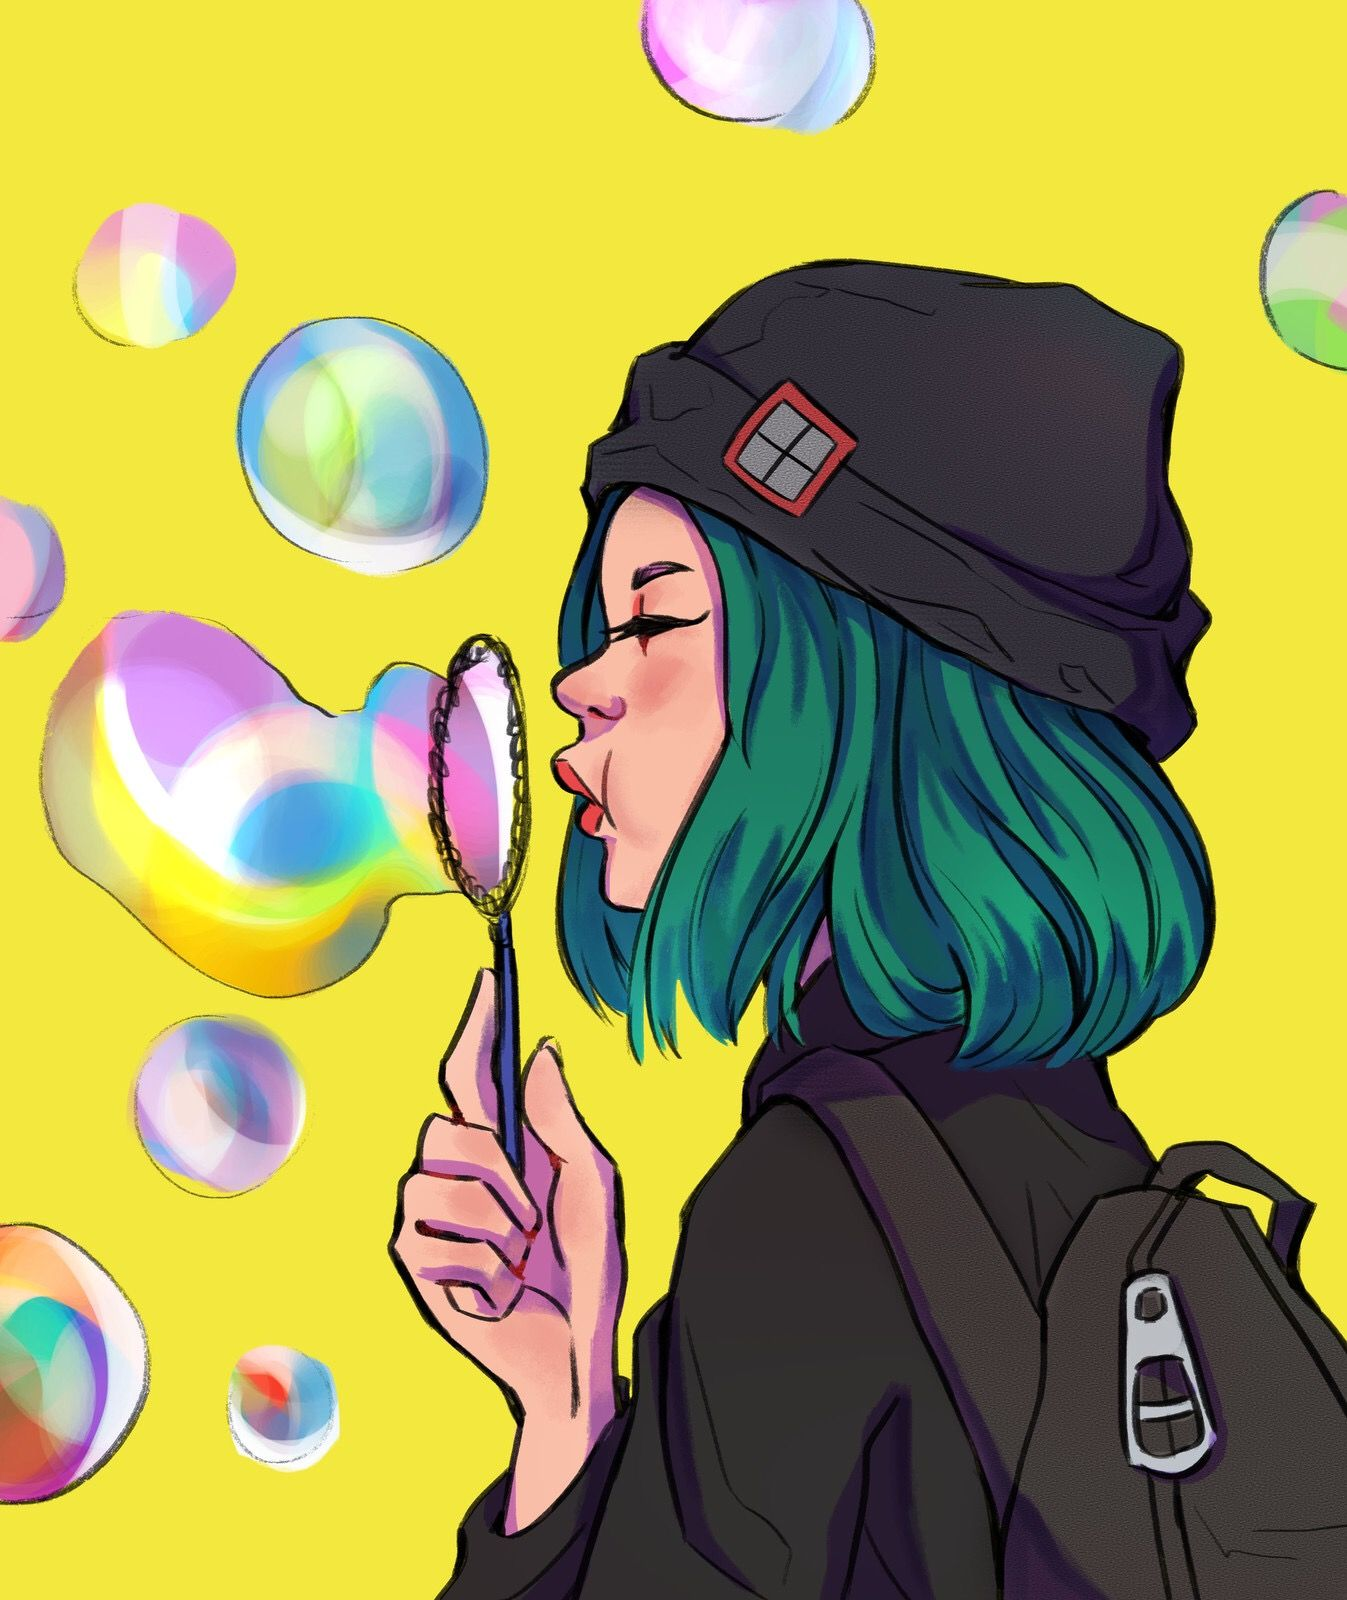 Pin by 李冠球 on gt (With images) Disney characters, Anime